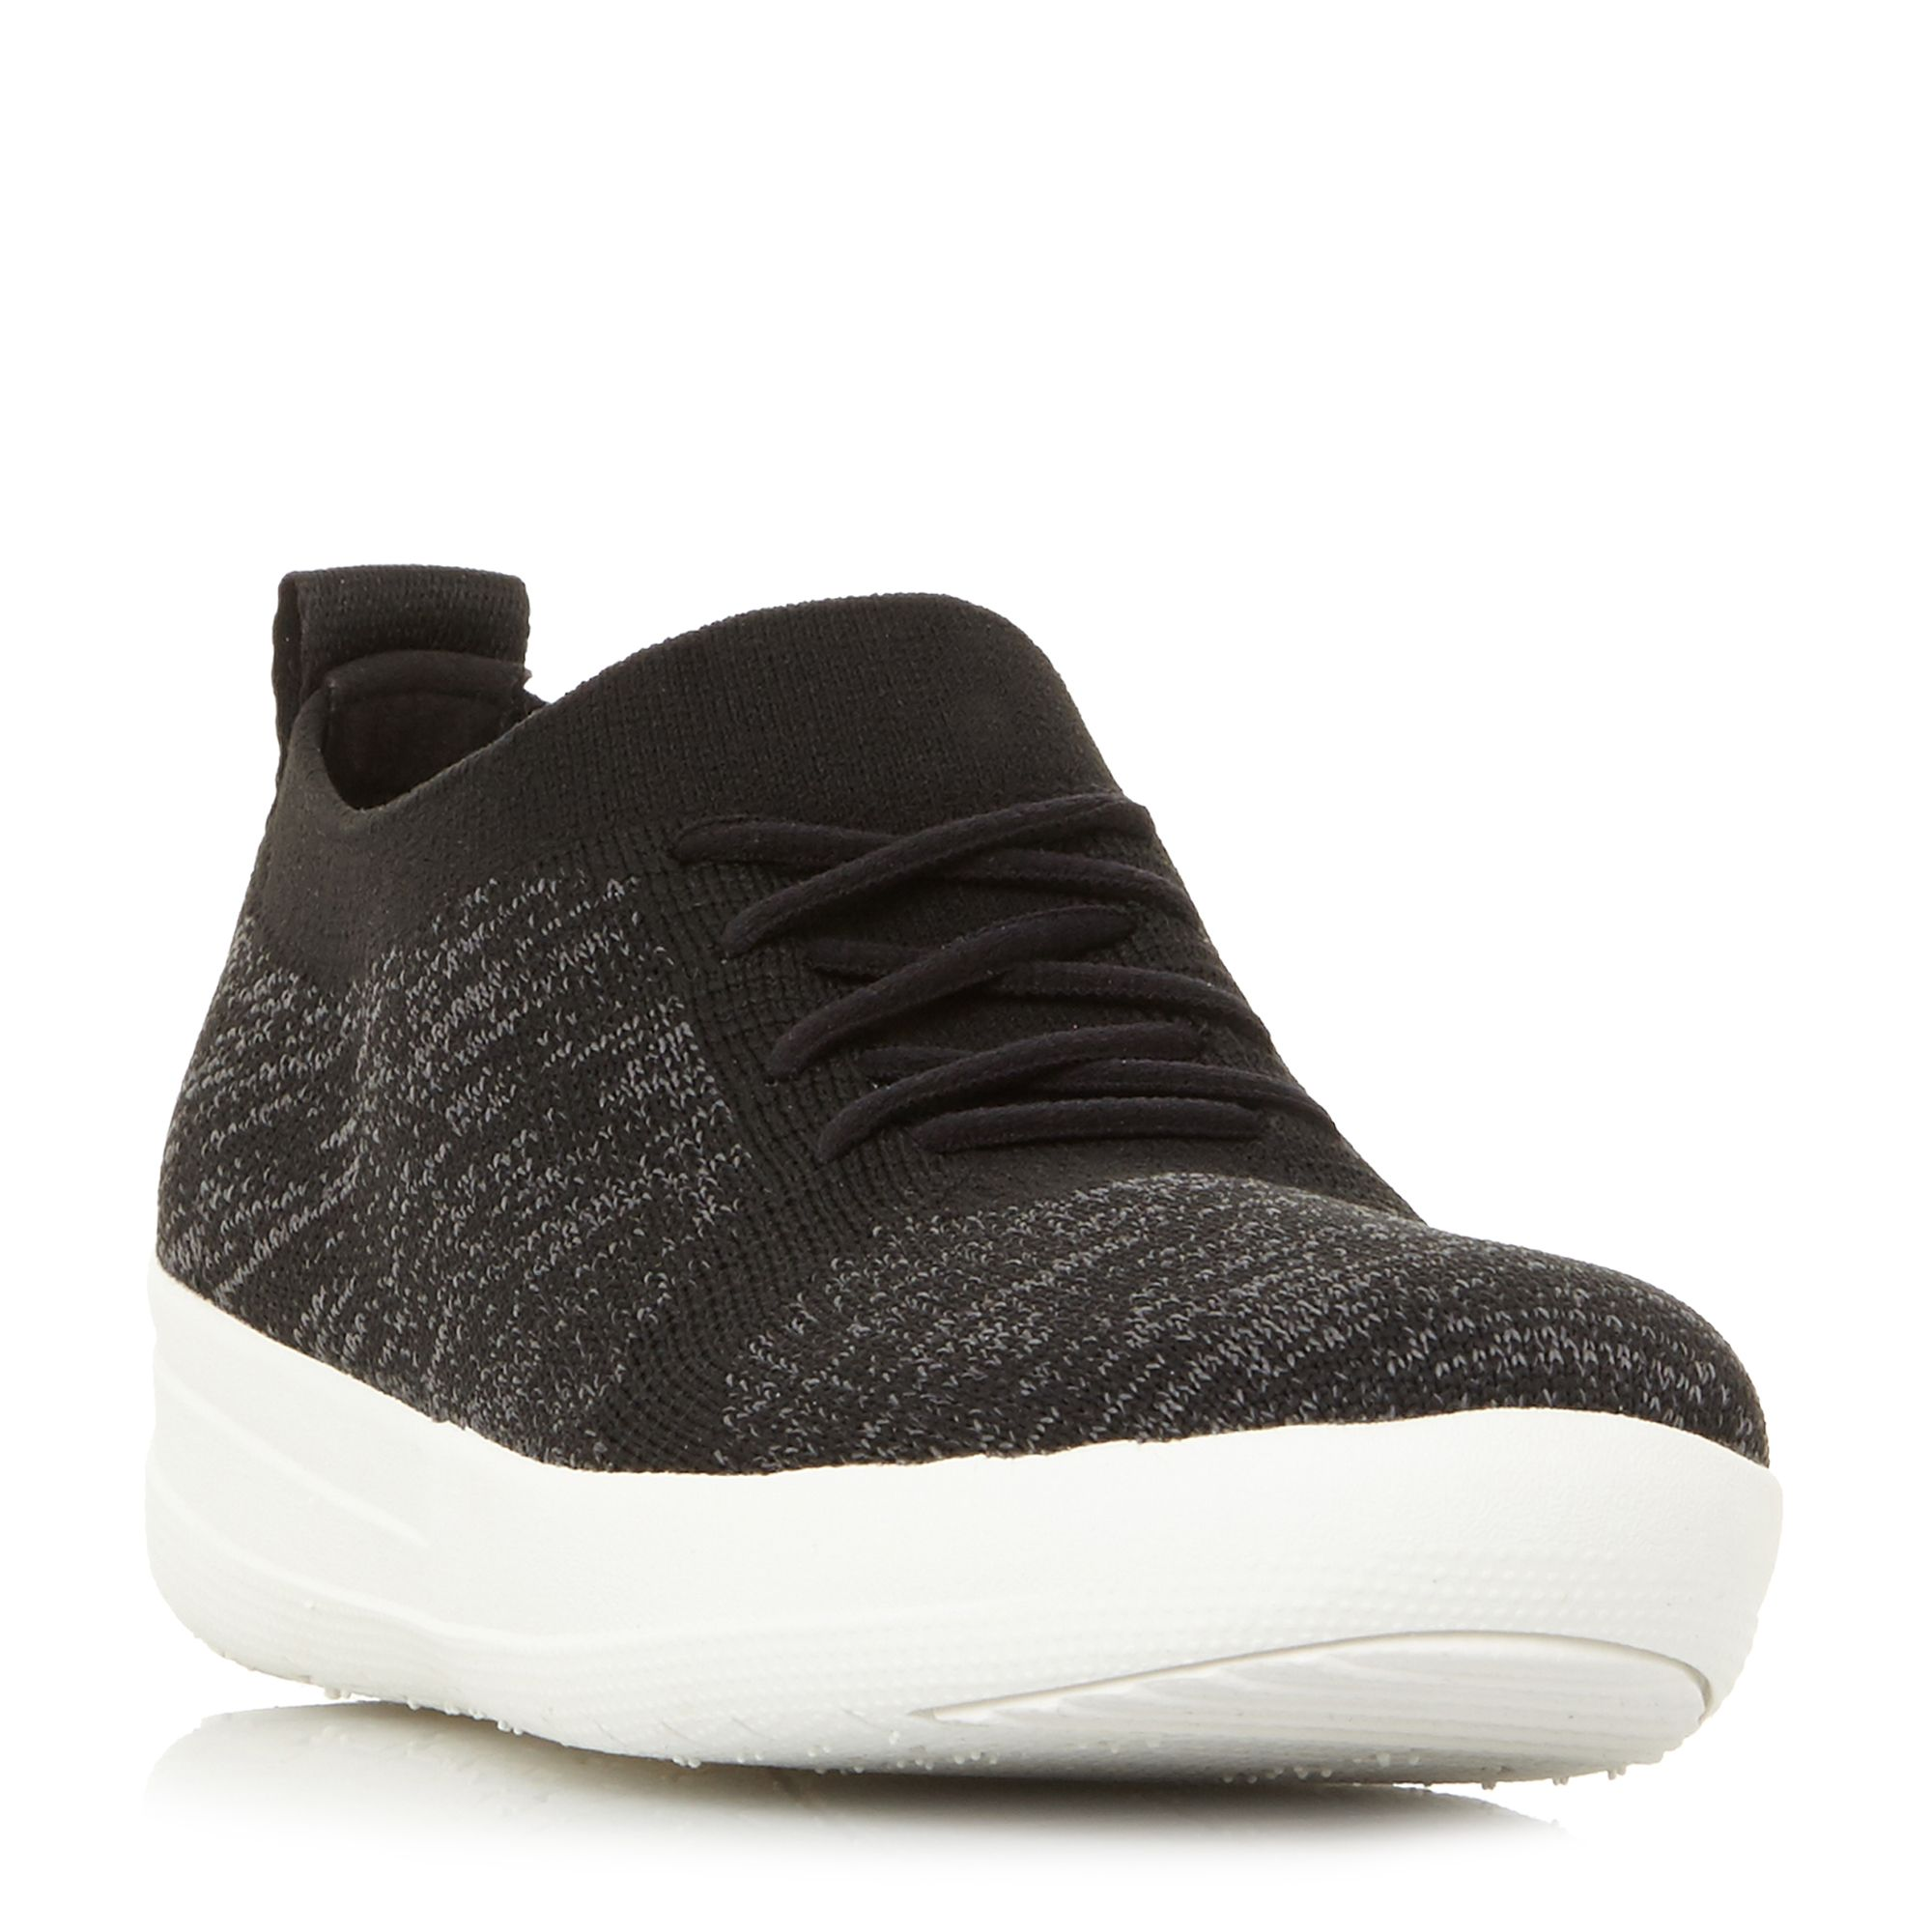 FitFlop F-Sporty Lace Up Trainers, Jet